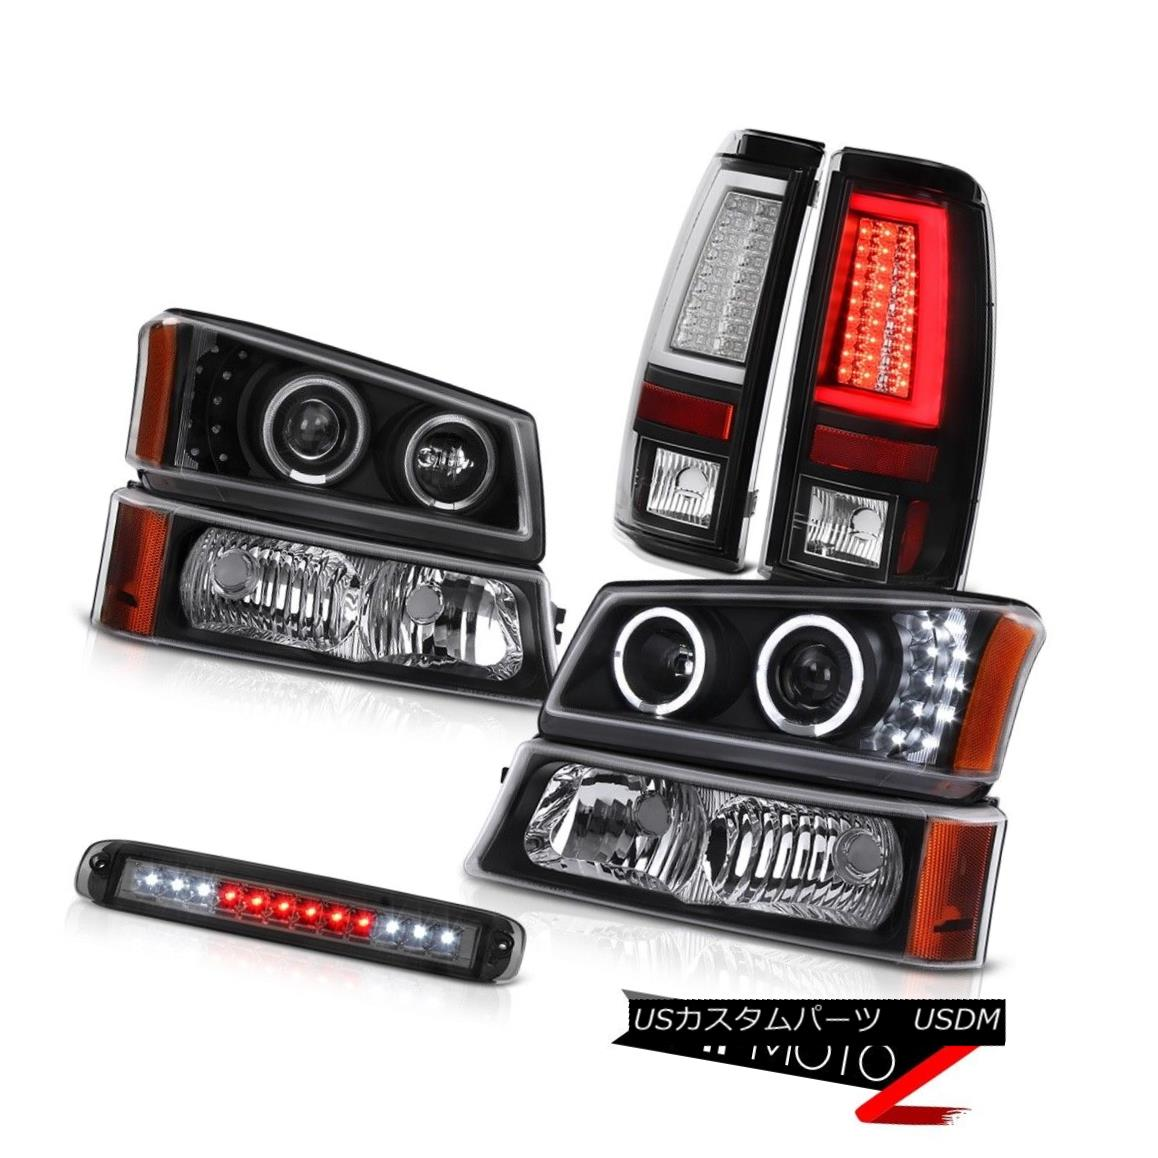 テールライト 03 04 05 06 Silverado Taillamps Roof Cab Light Signal Headlights Tron Style LED 03 04 05 06 Silverado TaillampsルーフキャブライトシグナルヘッドライトTron Style LED